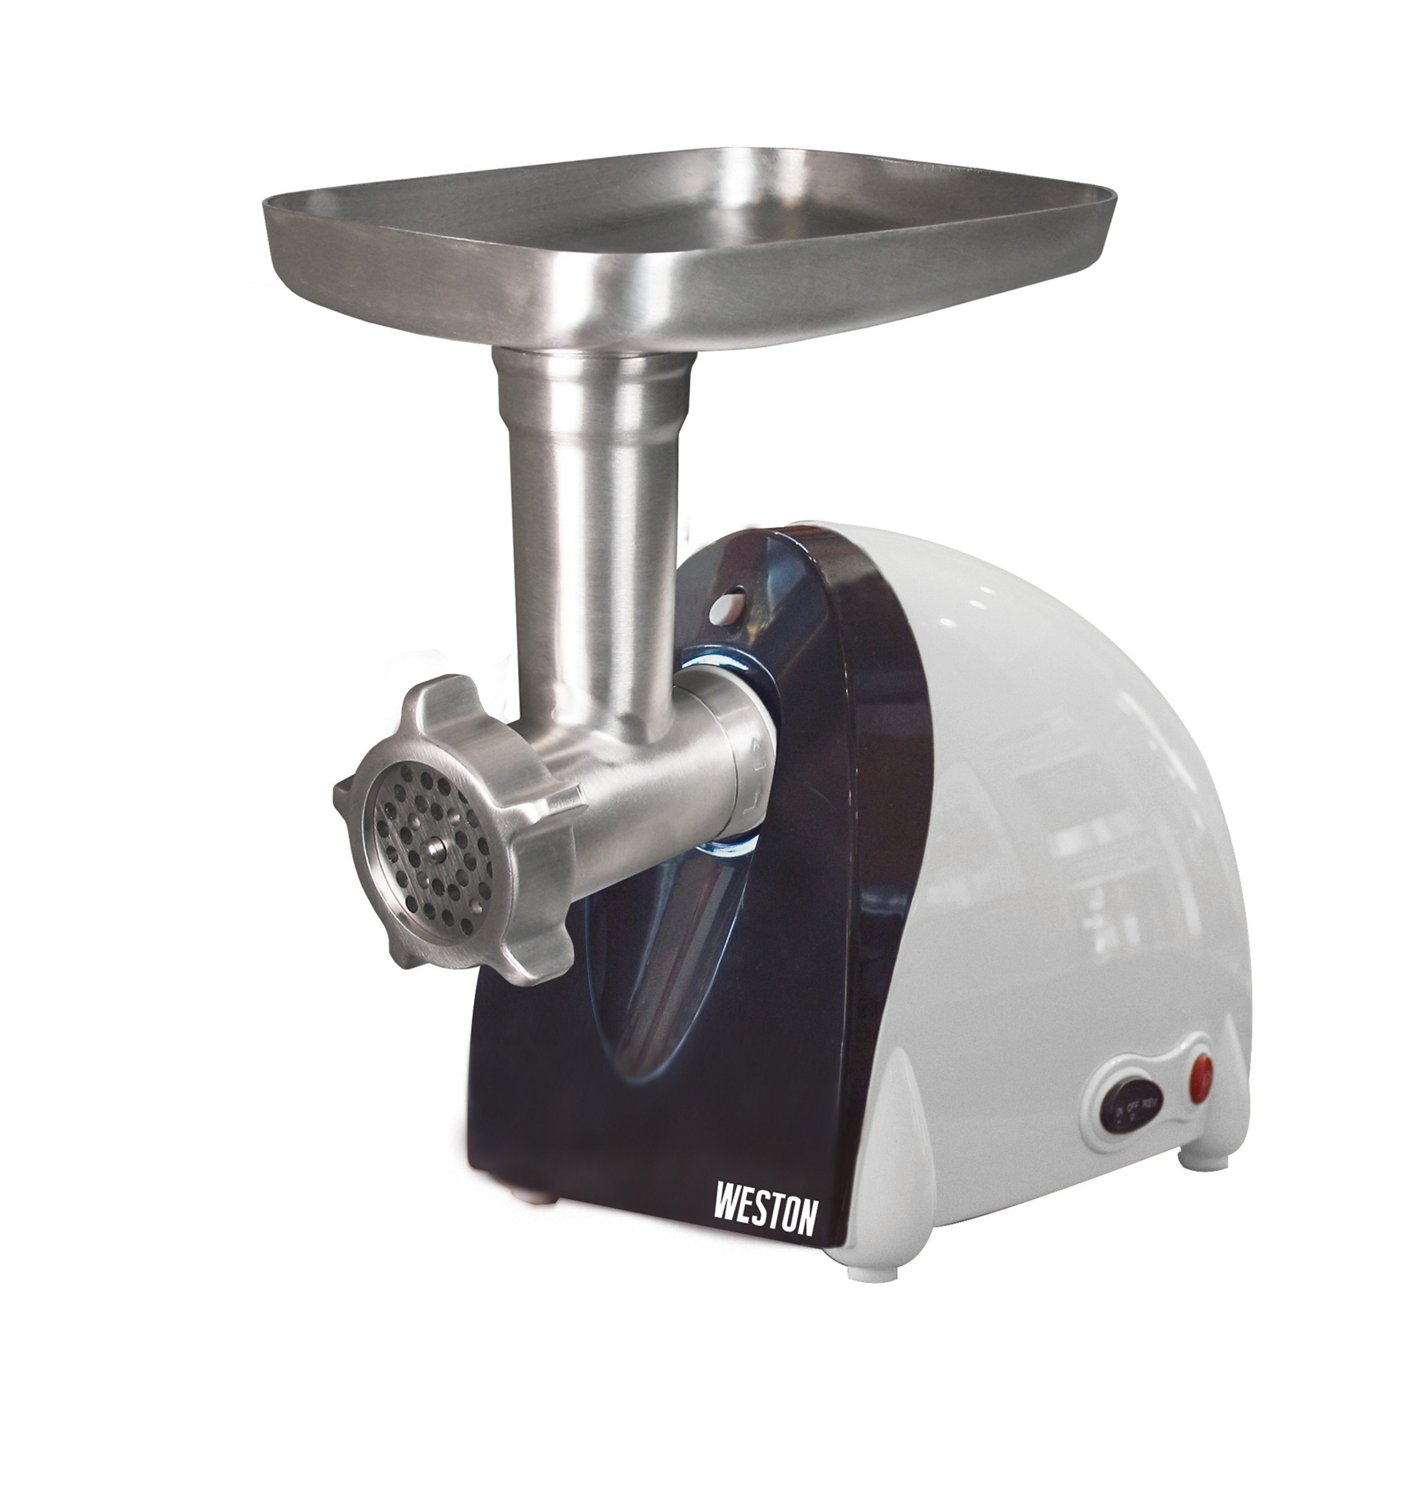 Weston #5 Electric Meat Grinder and Sausage Stuffer 500W